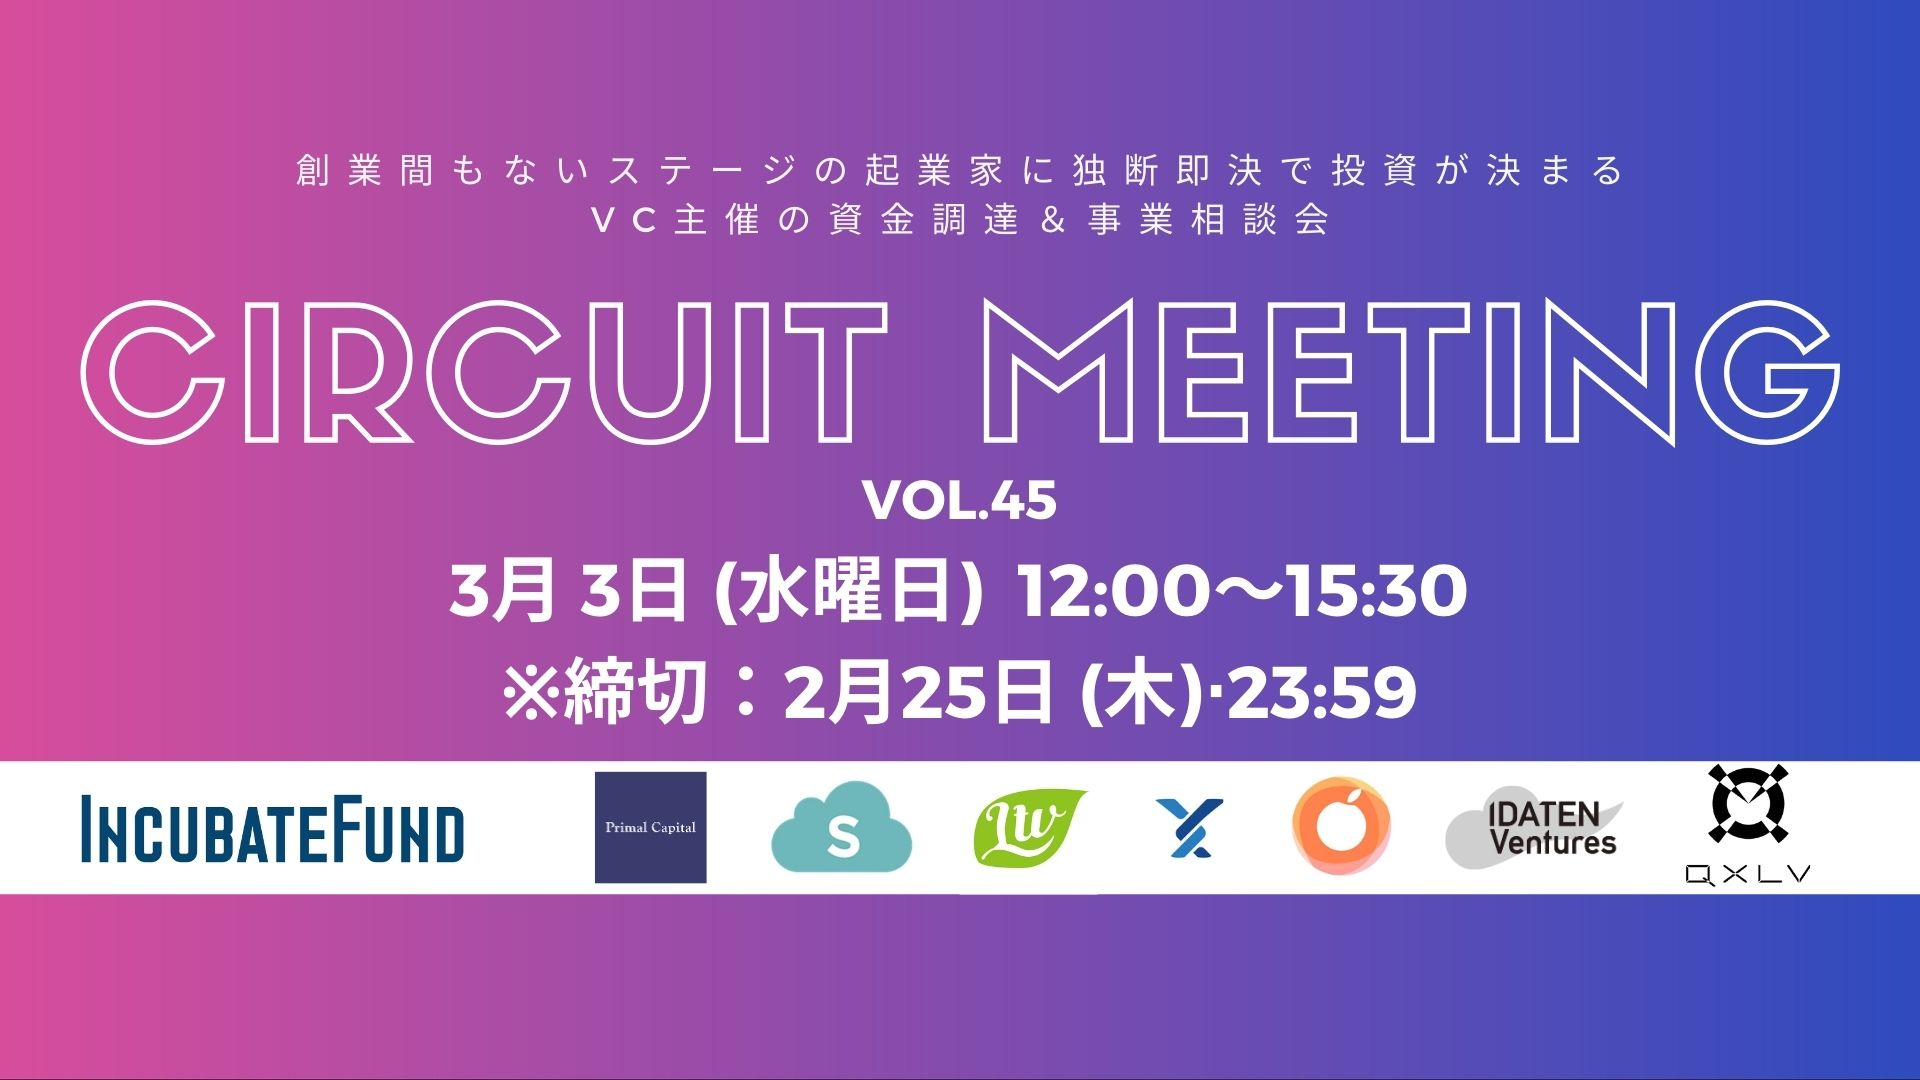 【募集終了】Circuit Meeting Vol.45